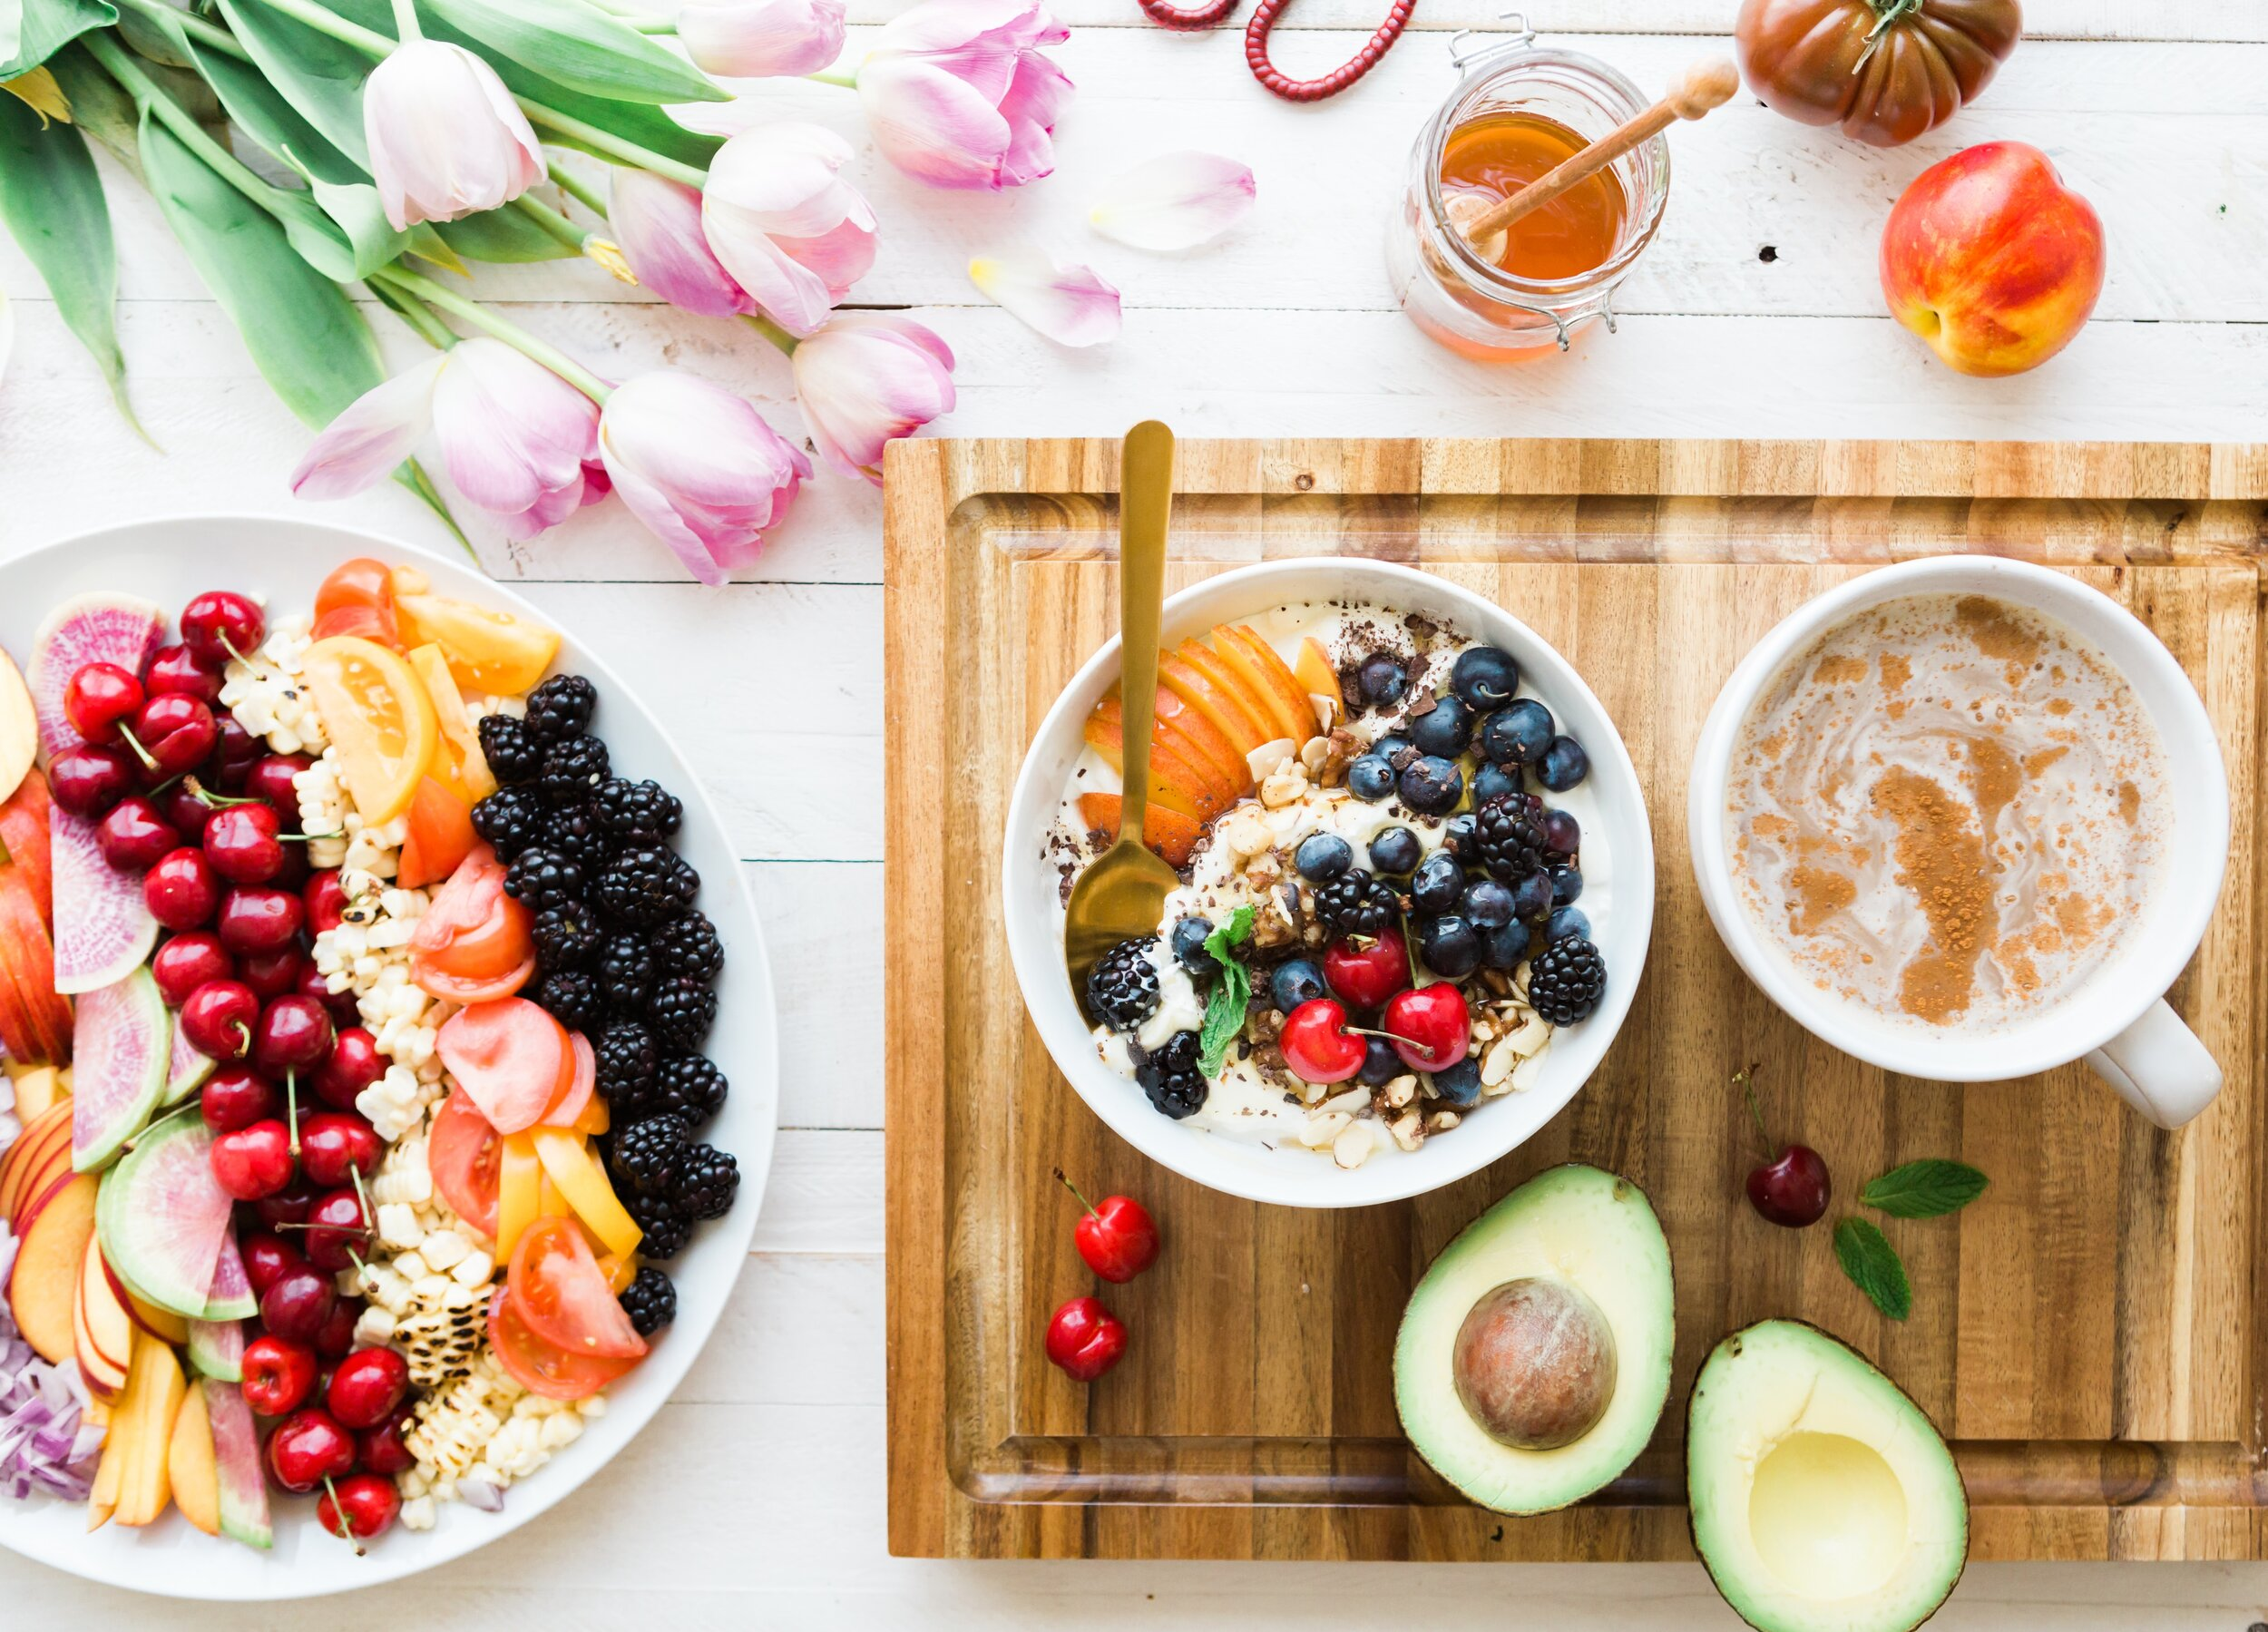 - Get Access To My FREE 3-Day Whole Food Cleanse For New Moms (also safe for breastfeeding moms!).